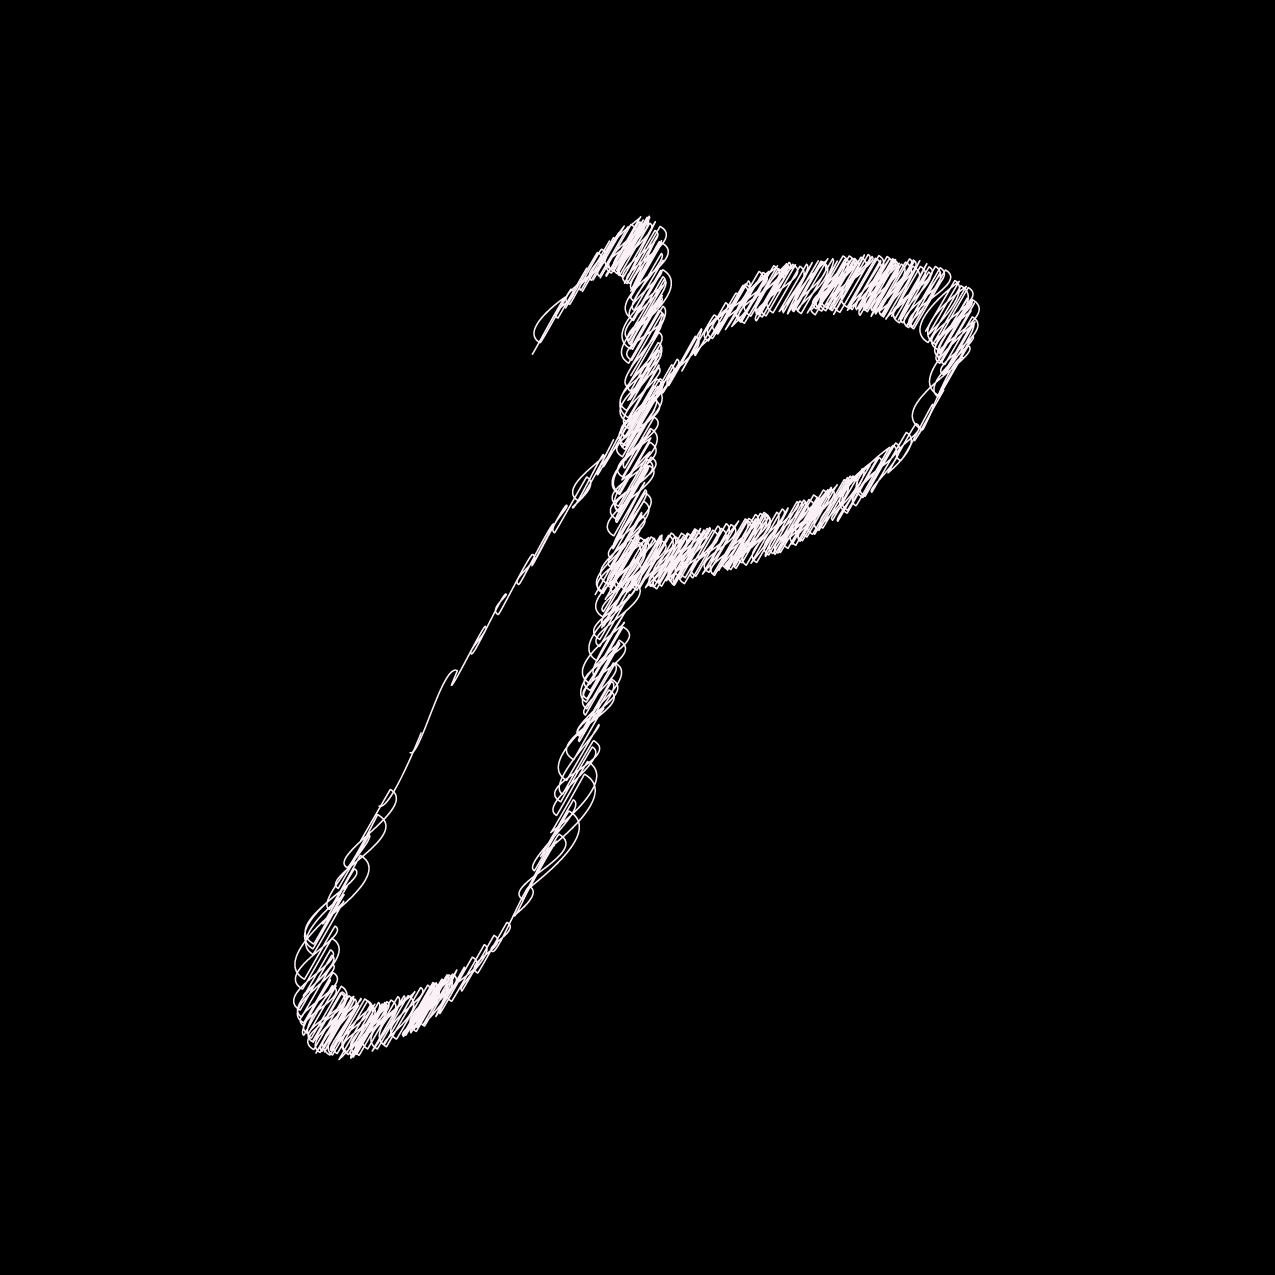 Letter P3 Design by Furia